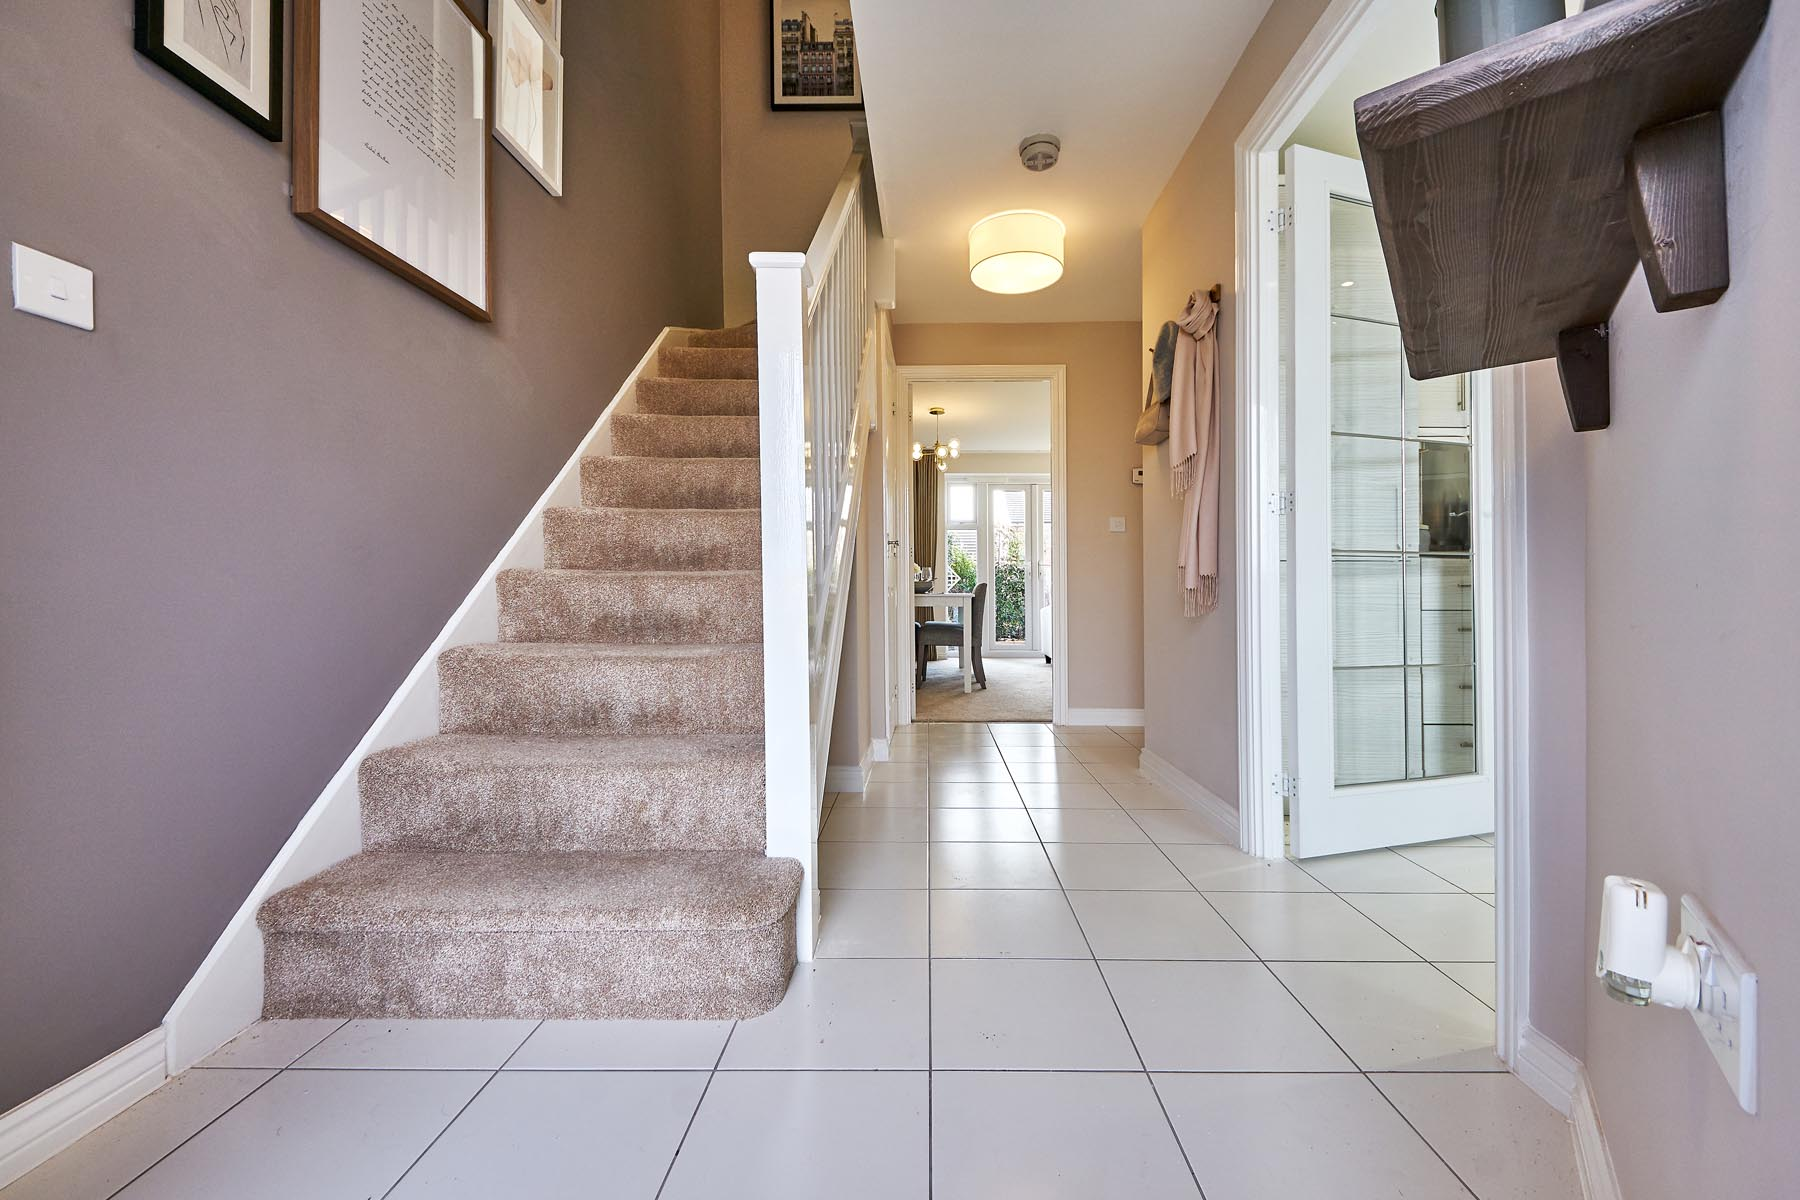 TW Exeter - Buckingham Heights - Flatford example hallway